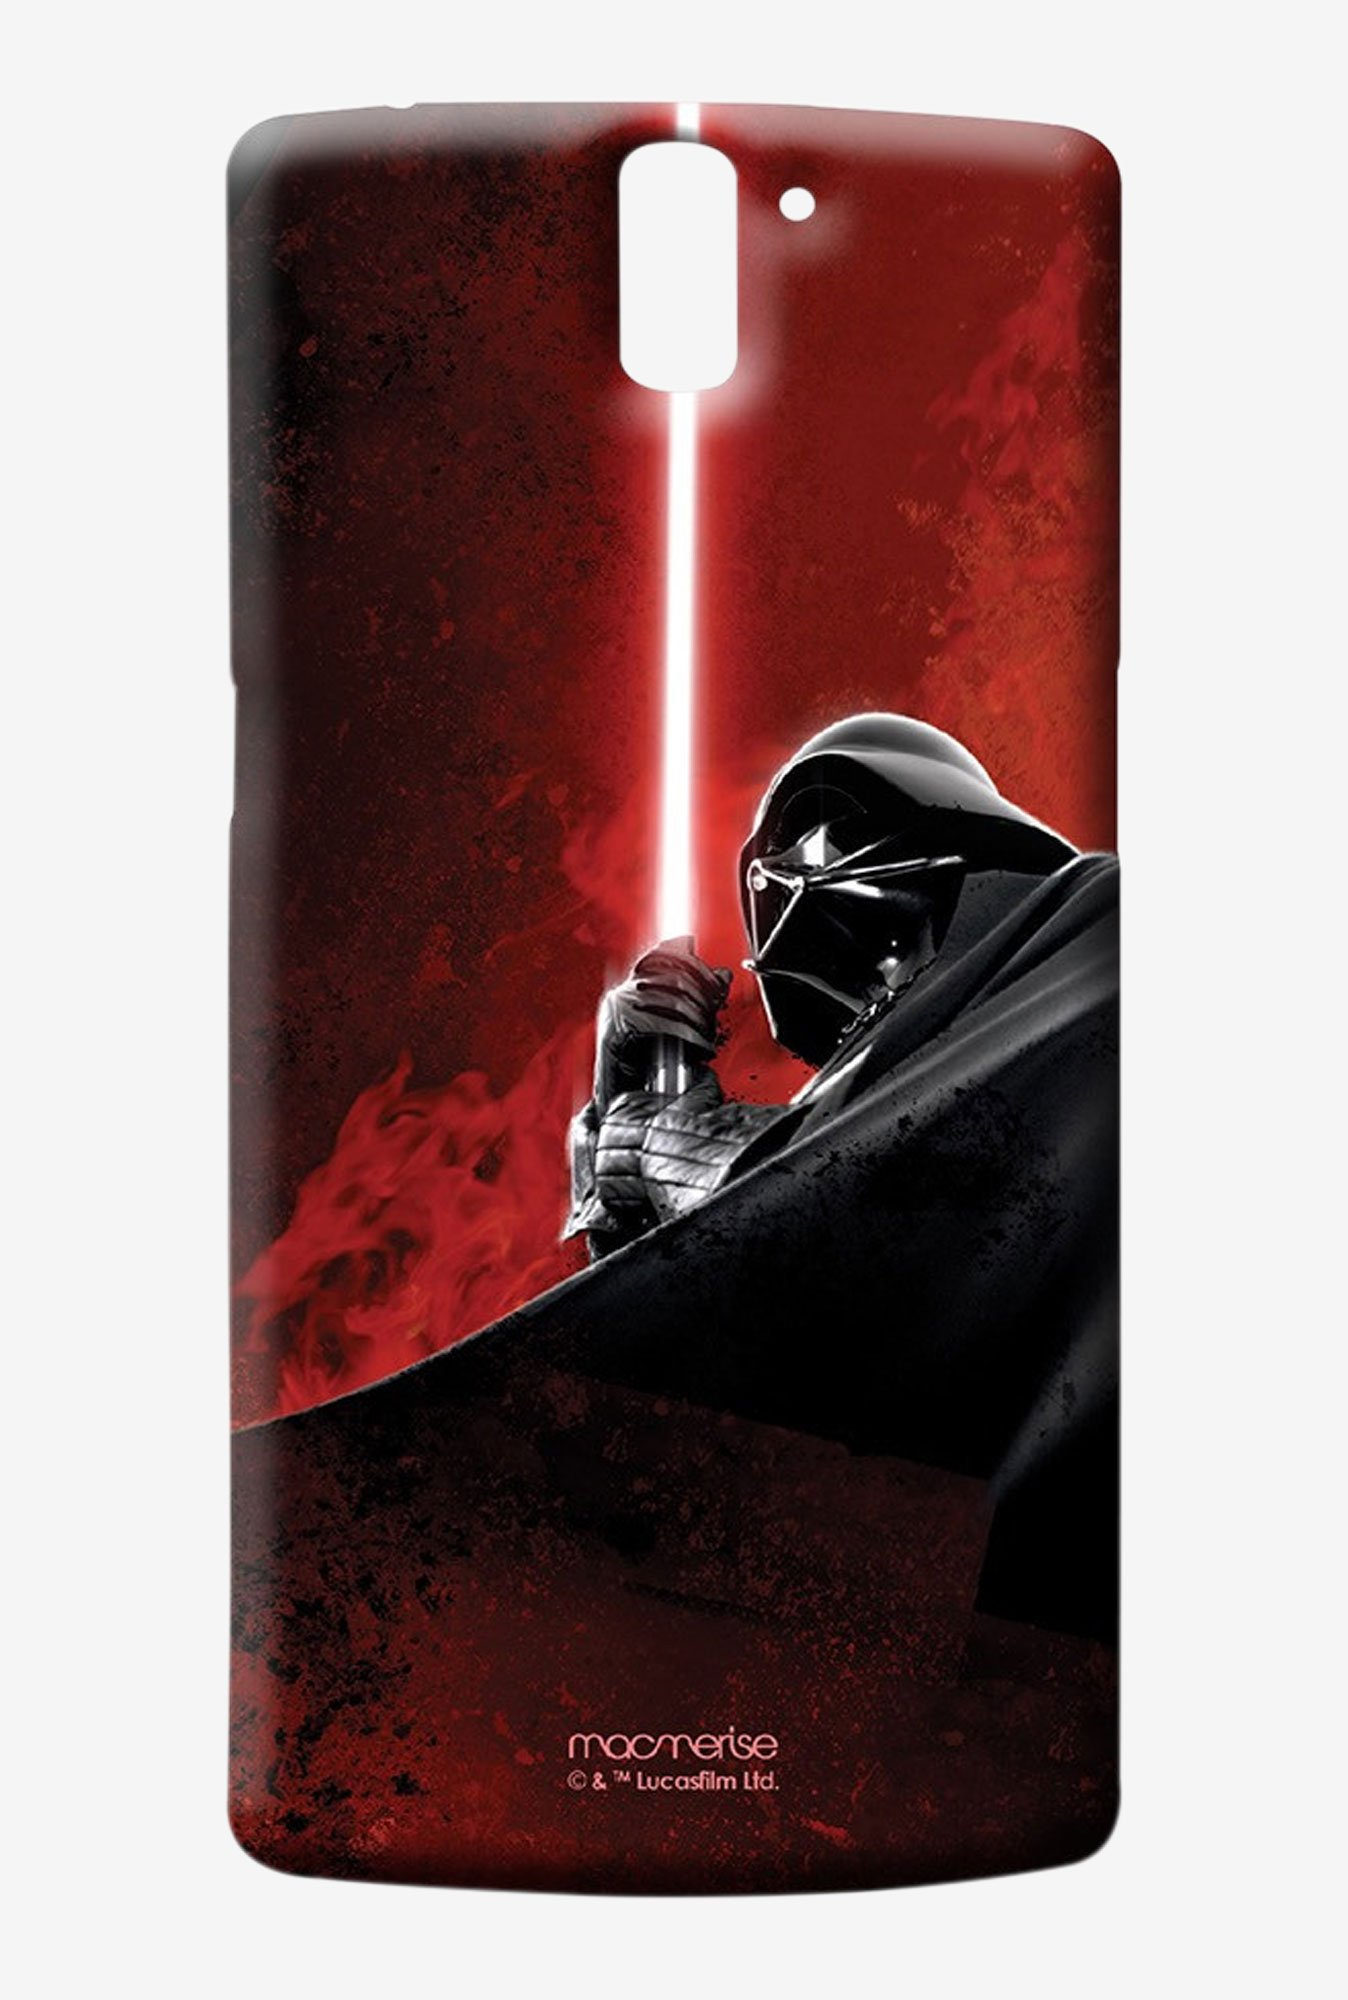 Macmerise The Vader Attack Sublime Case for Oneplus One